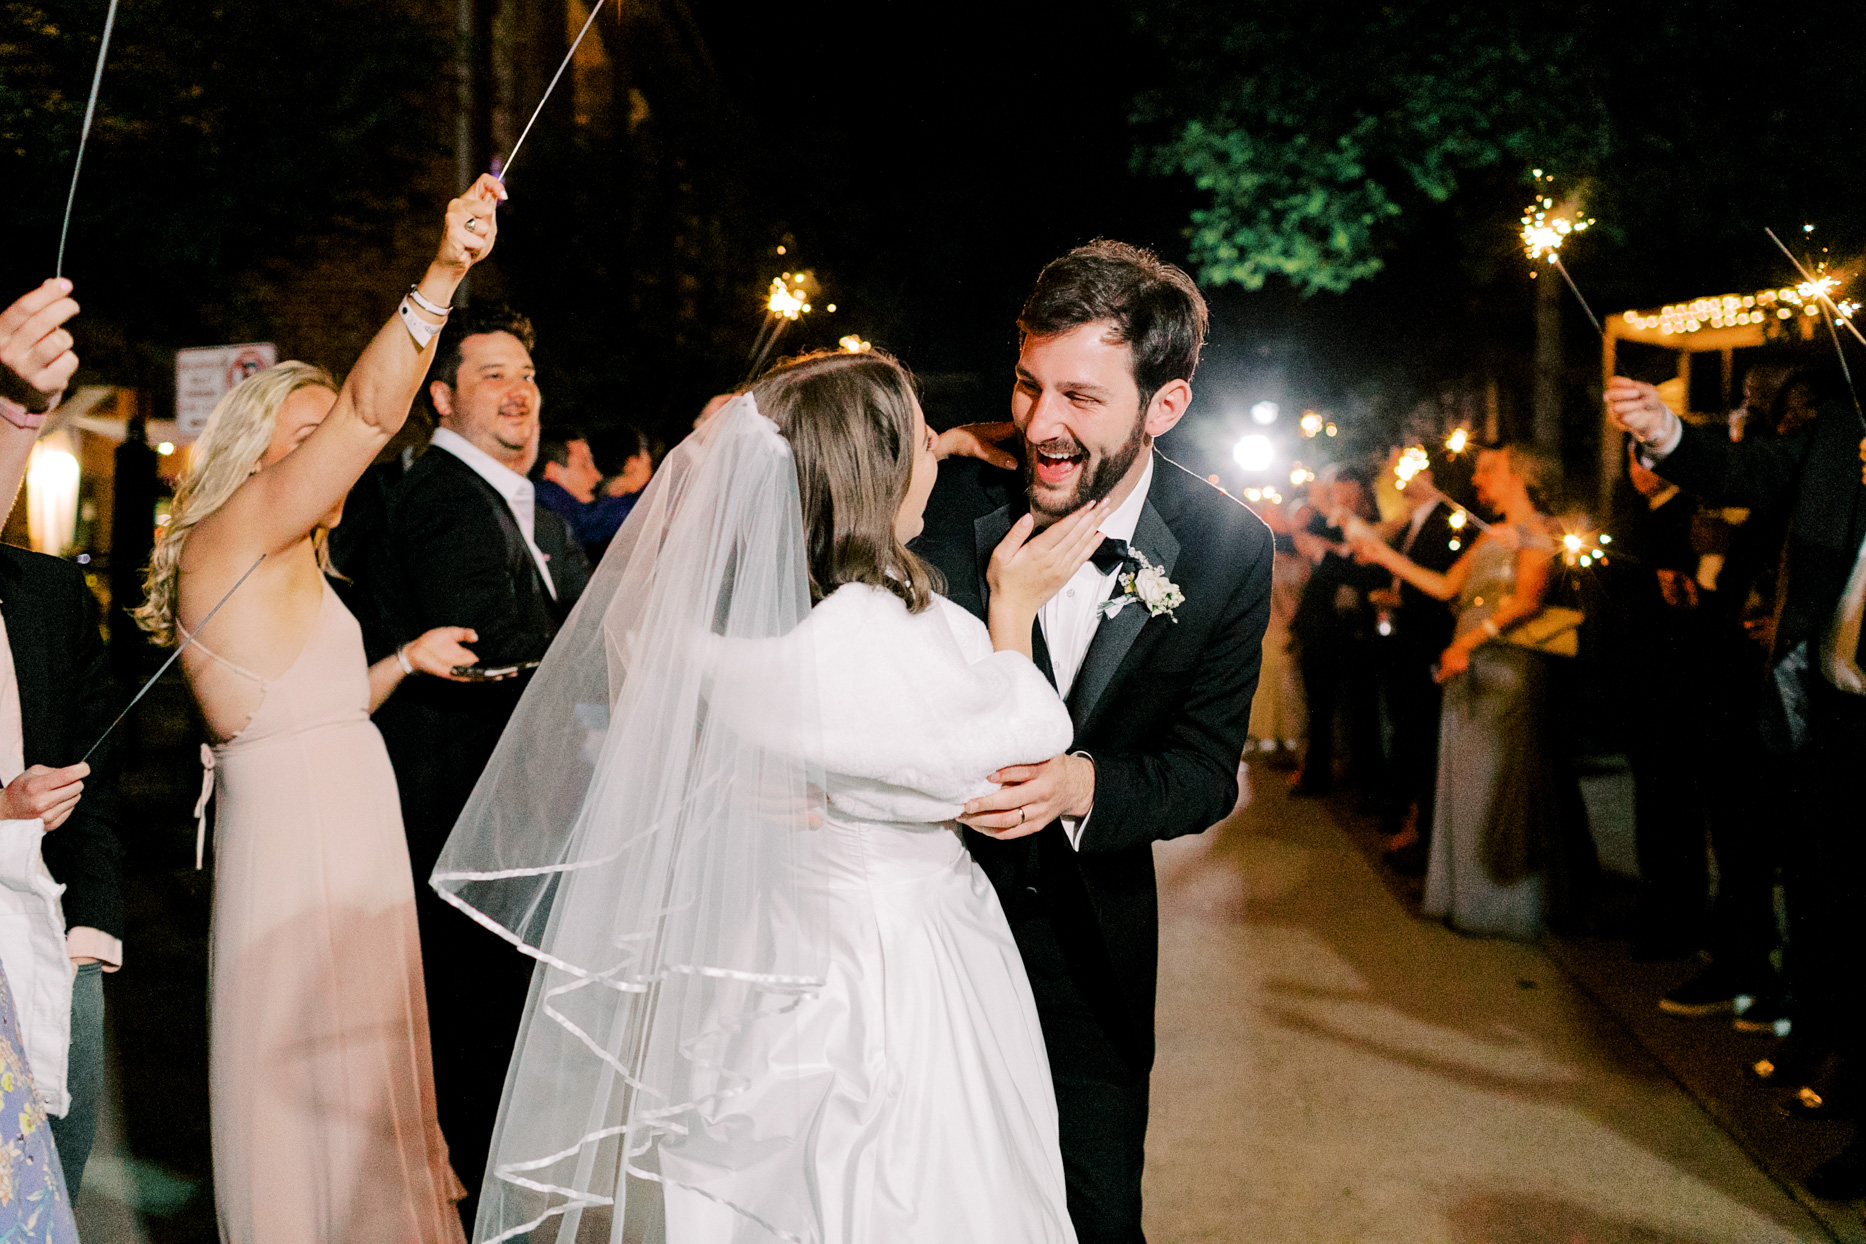 bride and groom smiling surrounded by guests with sparklers for wedding exit